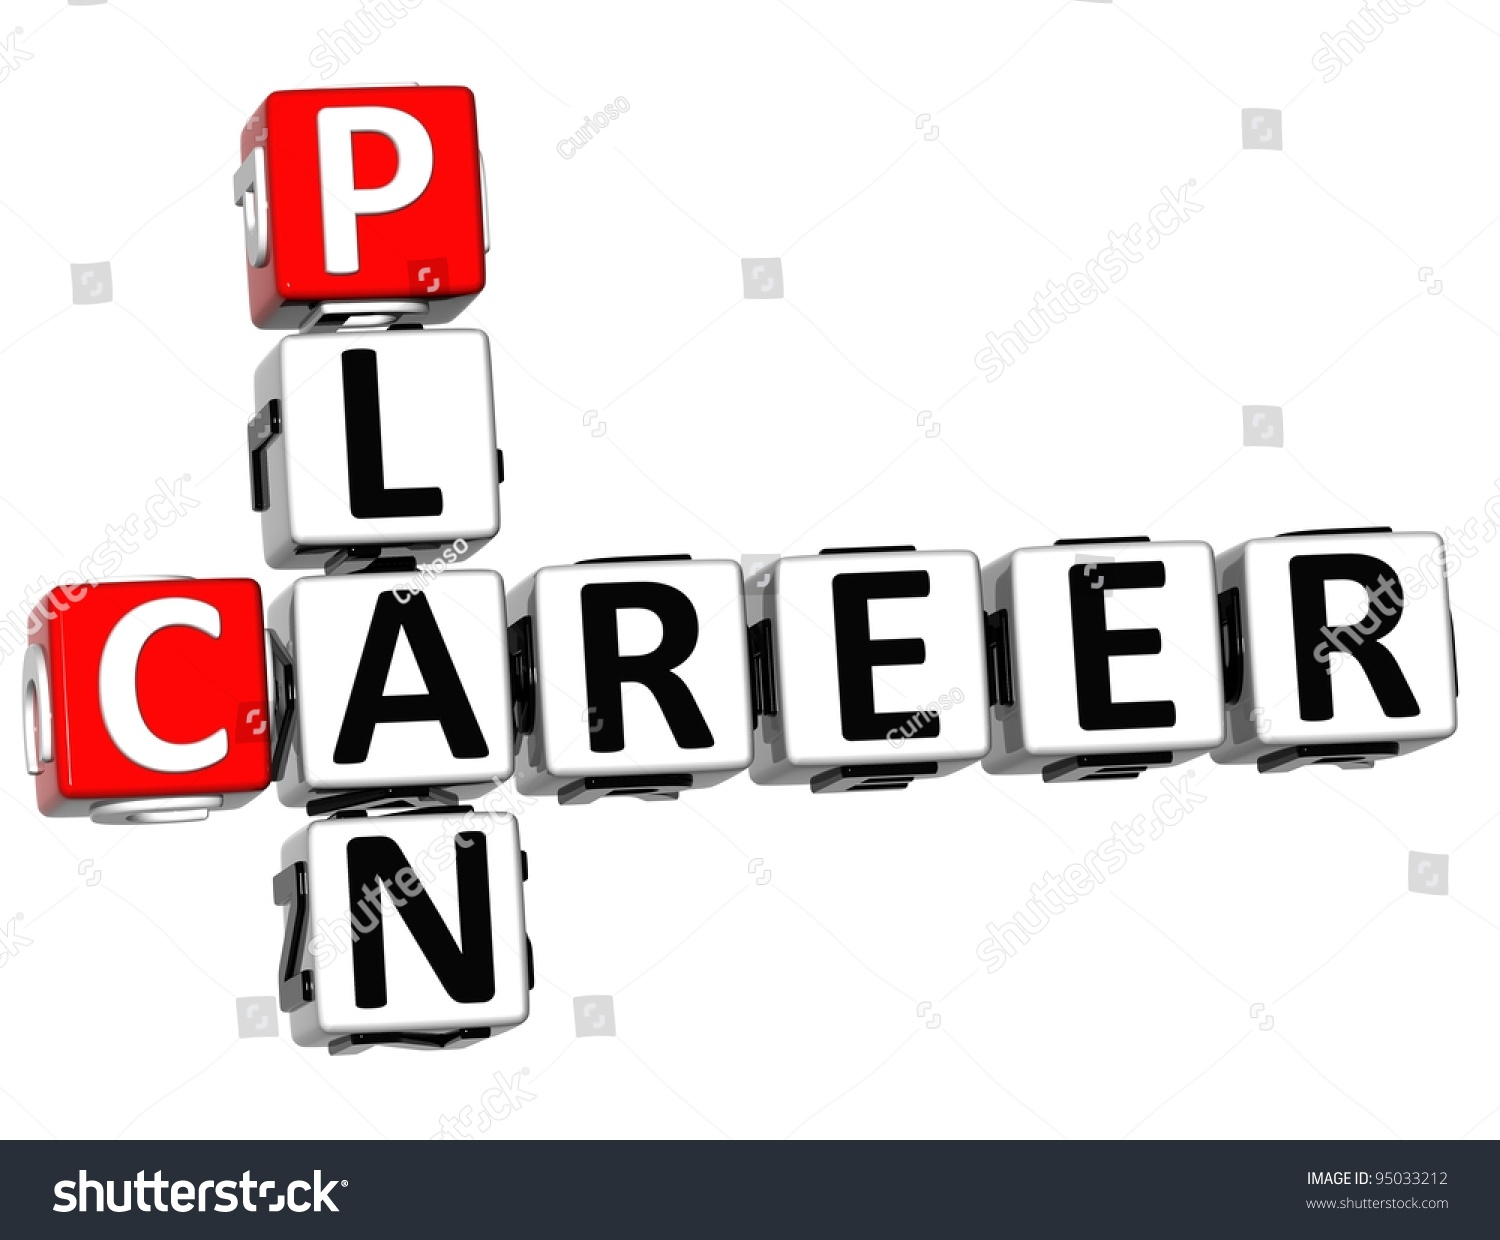 d plan career crossword on white stock illustration  3d plan career crossword on white background